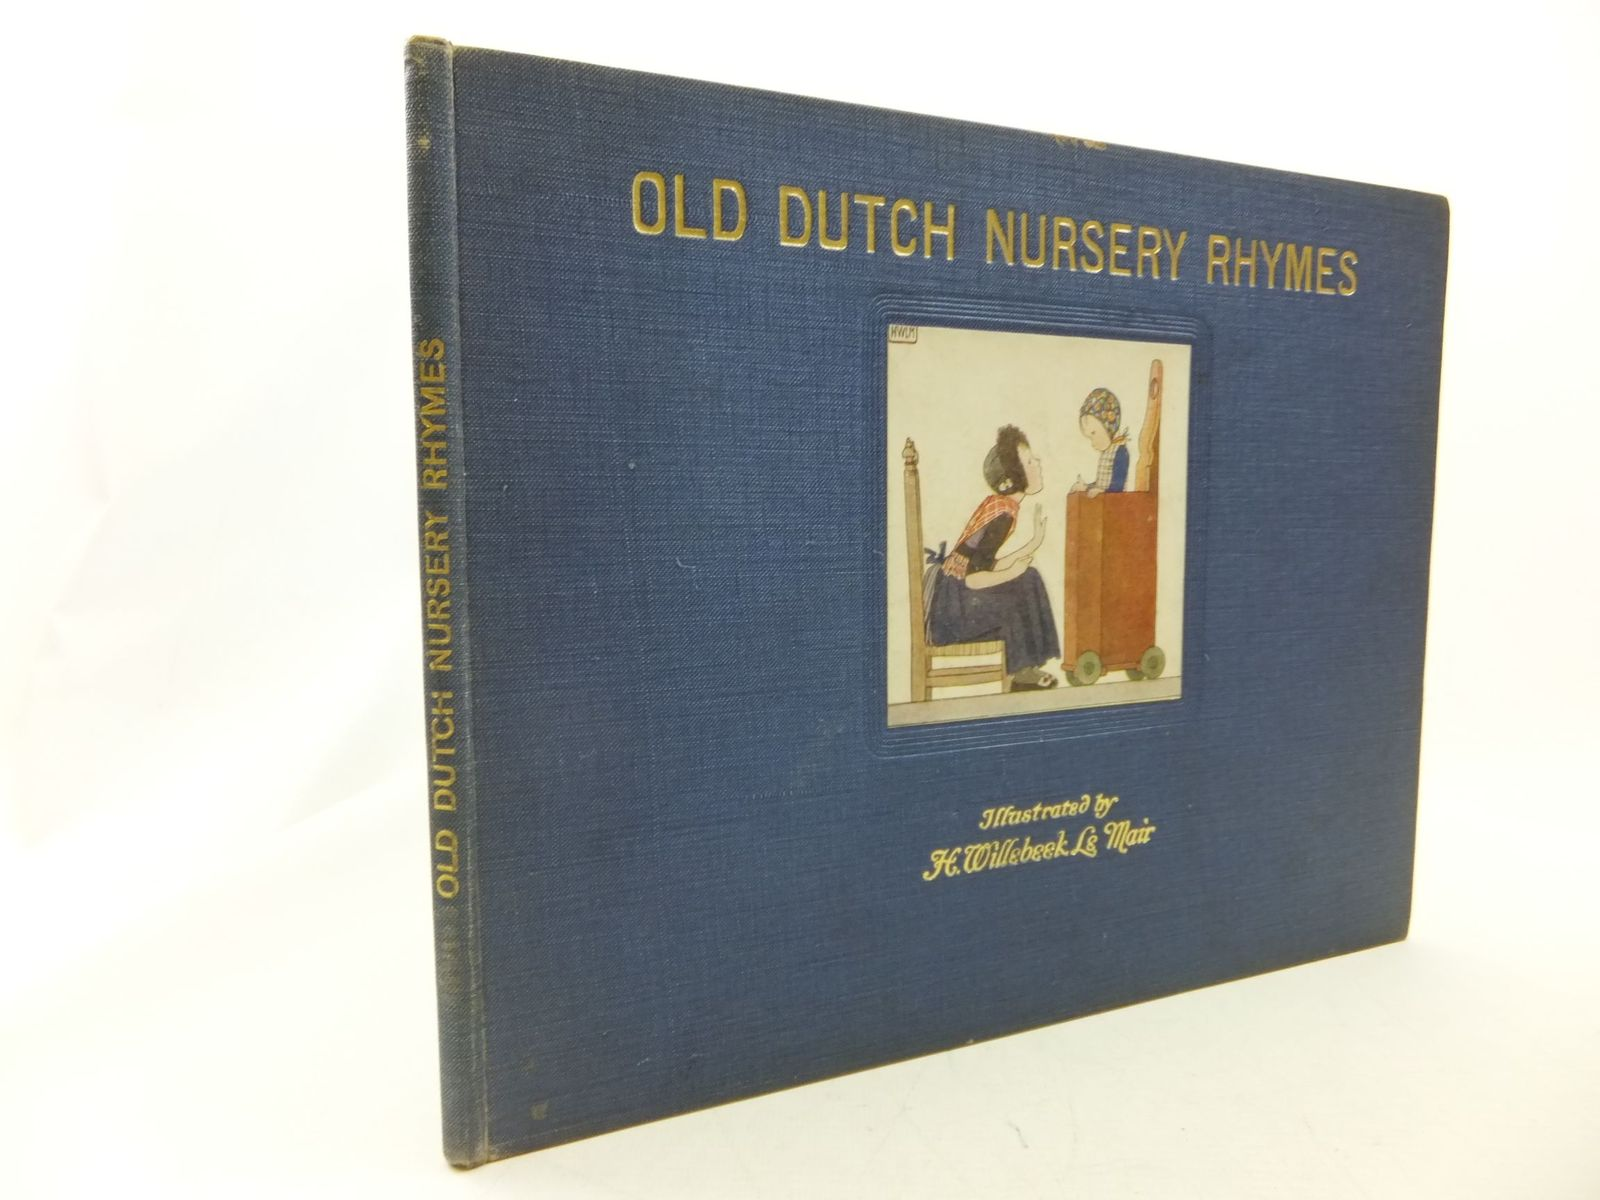 Photo of OLD DUTCH NURSERY RHYMES written by Rontgen, J. Elkin, R.H. illustrated by Willebeek Le Mair, Henriette published by Augener Ltd. (STOCK CODE: 2114540)  for sale by Stella & Rose's Books